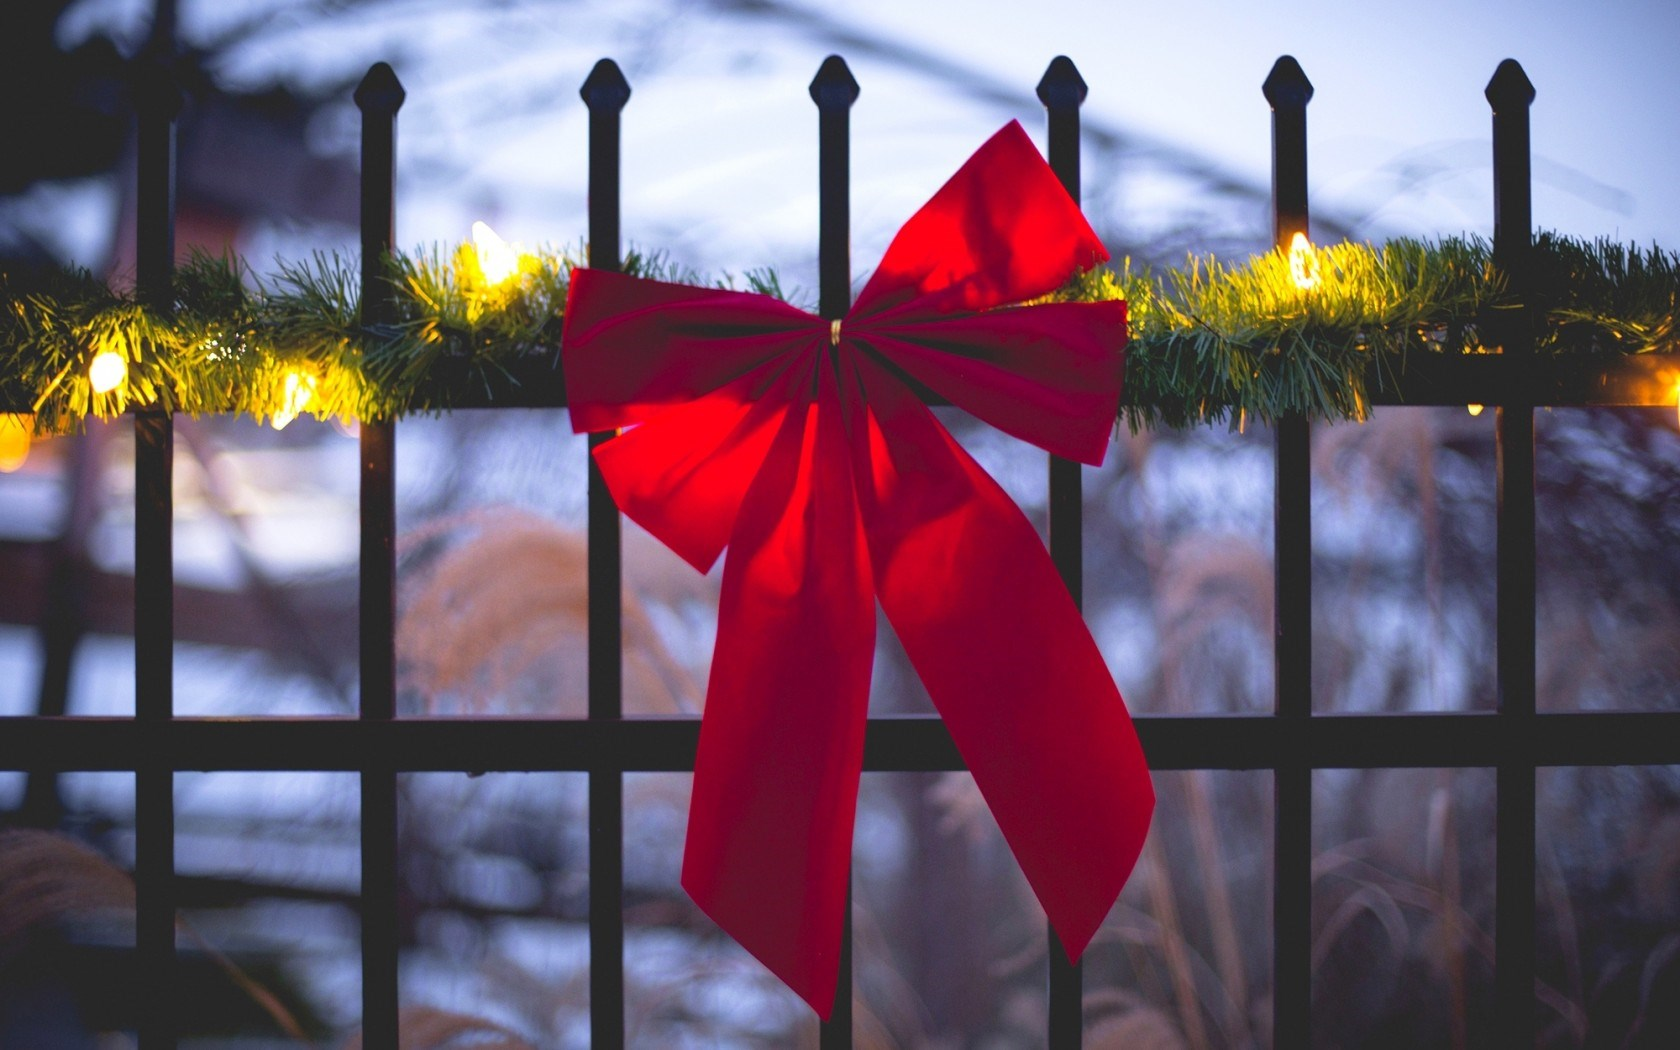 Fence Ribbon Red Holiday Garland Lights Winter